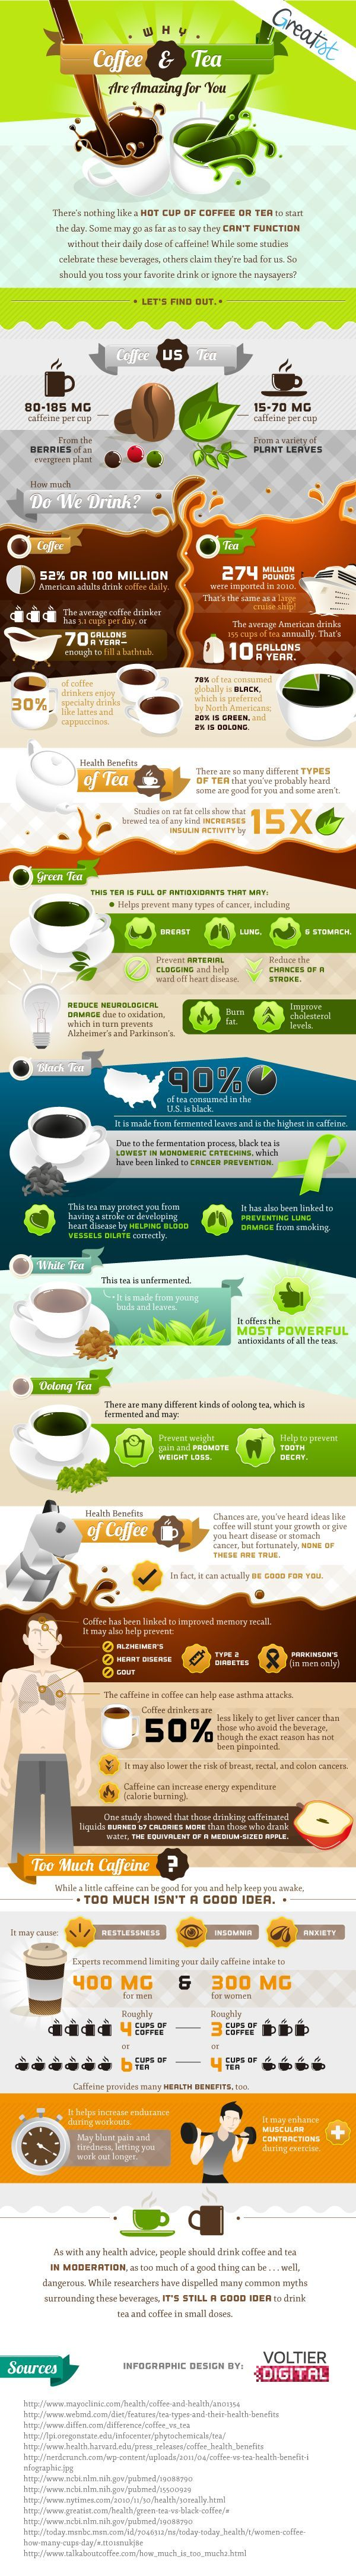 Why Coffee and Tea Are Amazing For You — Find out what the health benefits between these two popular drinks are. #coffee #tea #health #greatist